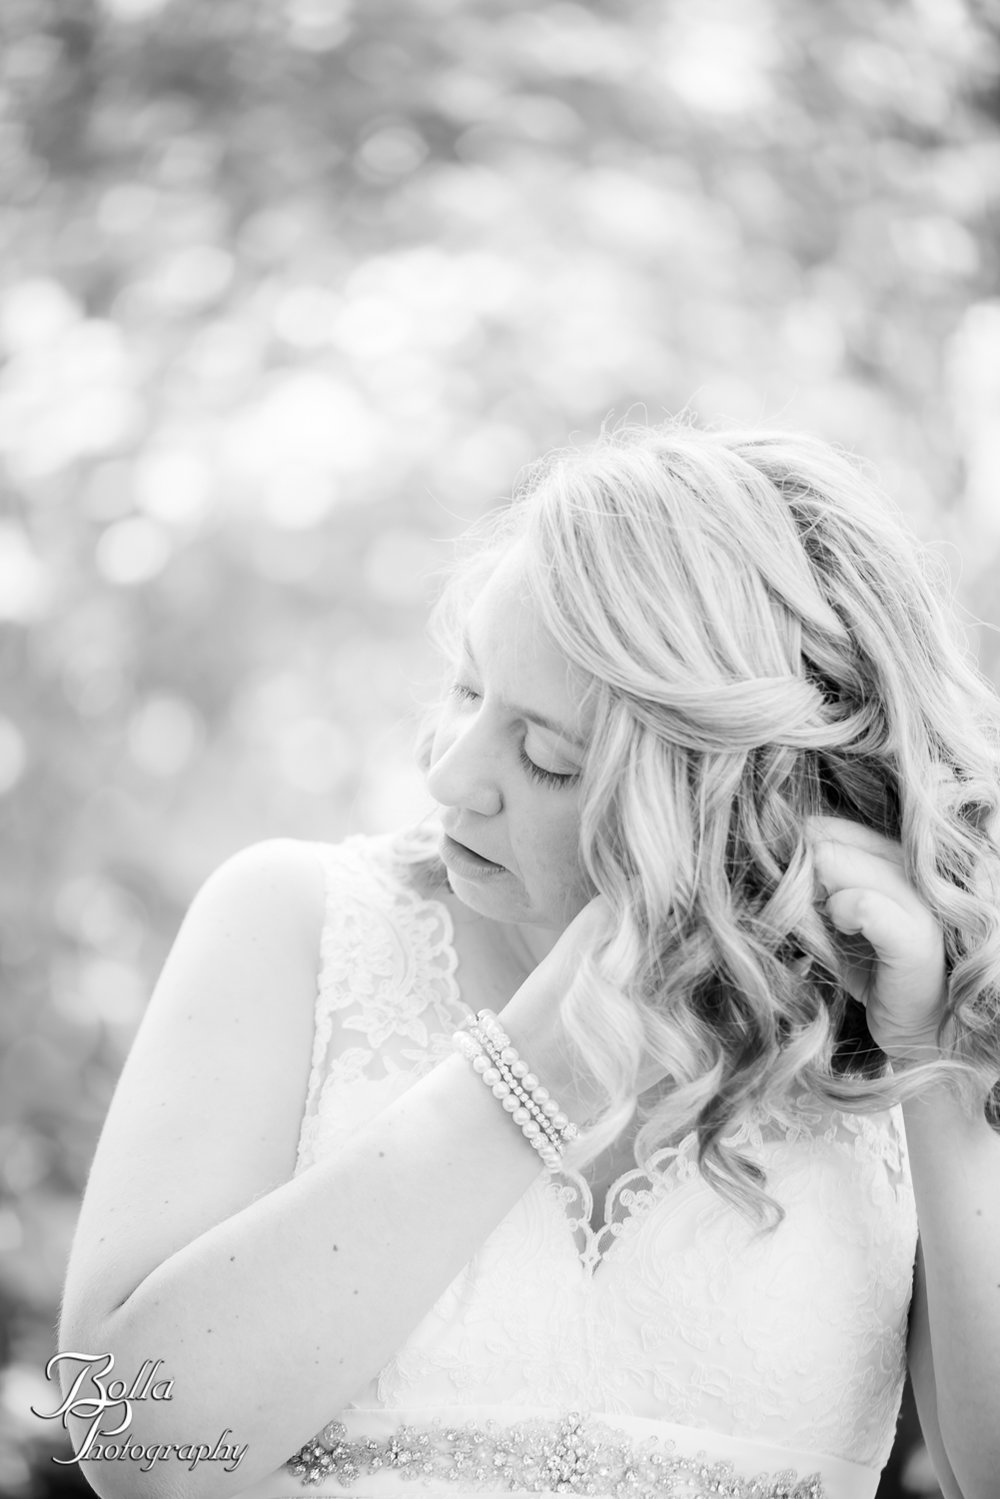 Bolla_Photography_St_Louis_wedding_photographer_Wildey_Theater_Edwardsville-0049.jpg